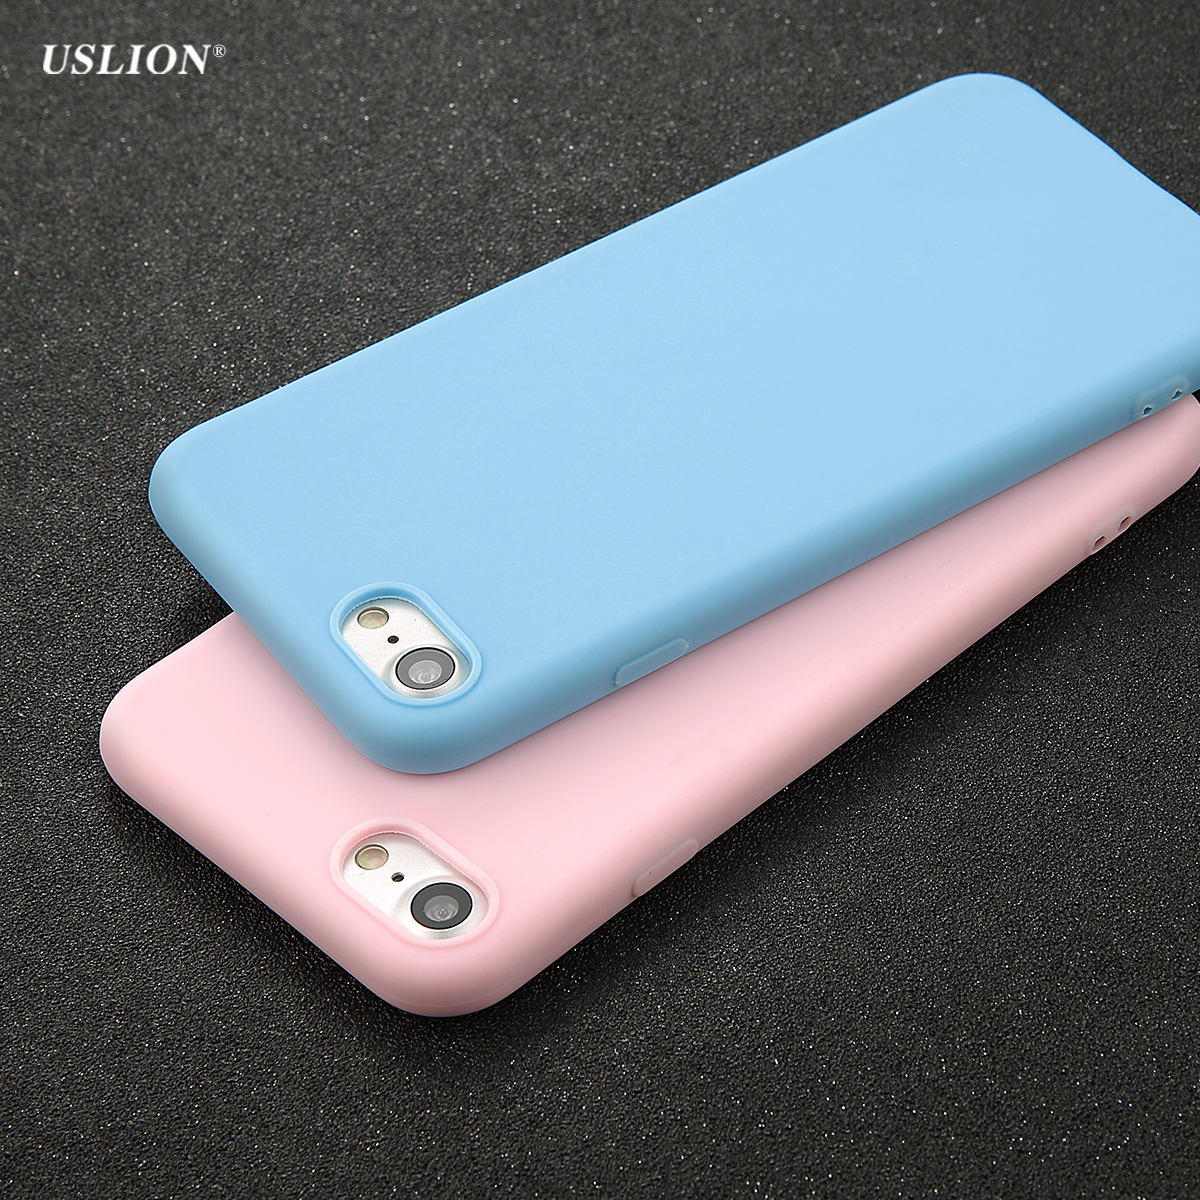 USLION Phone Case For iPhone 7 6 6s 8 X Plus 5 5s SE XR XS Simple Solid Color Ultrathin Soft TPU Cases Candy Color Back Cover protective plastic back case cover for iphone 6 plus black